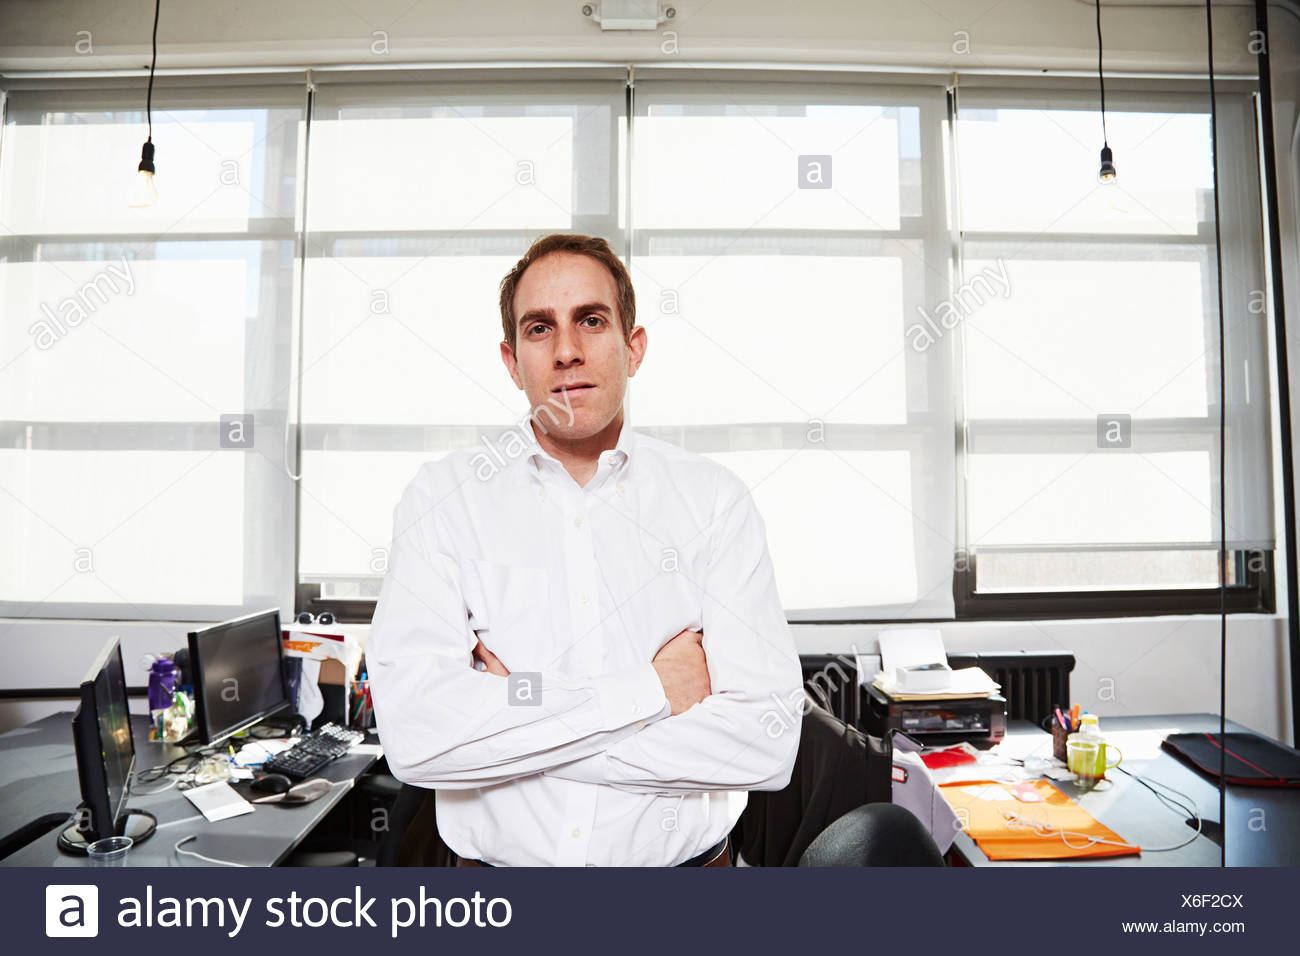 Mid adult man wearing white shirt in office Stock Photo